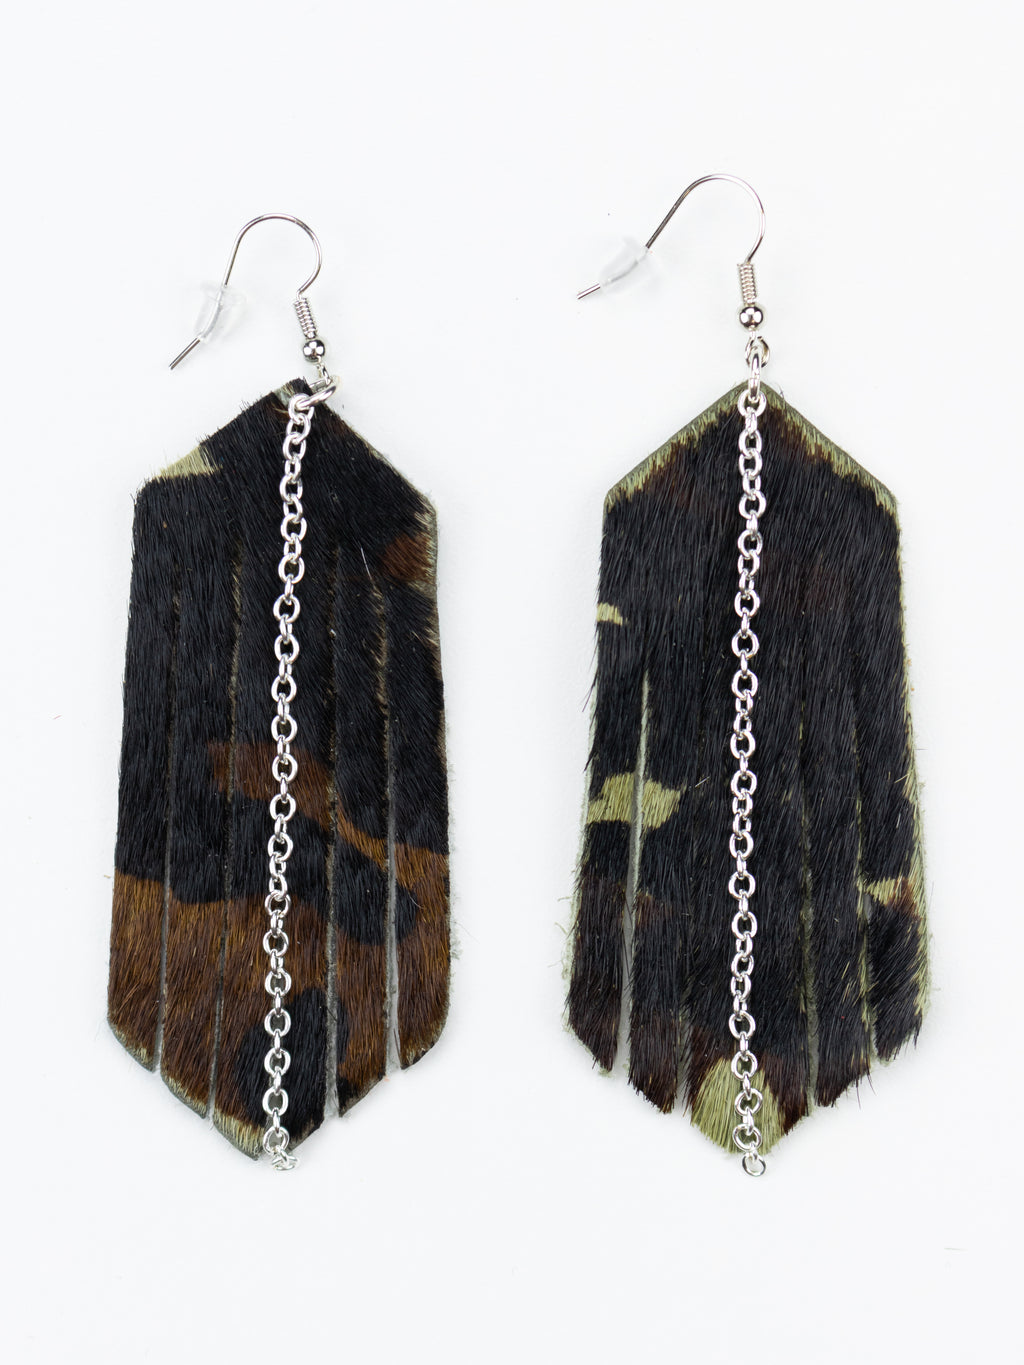 At The Cabin - RosieJo Earrings